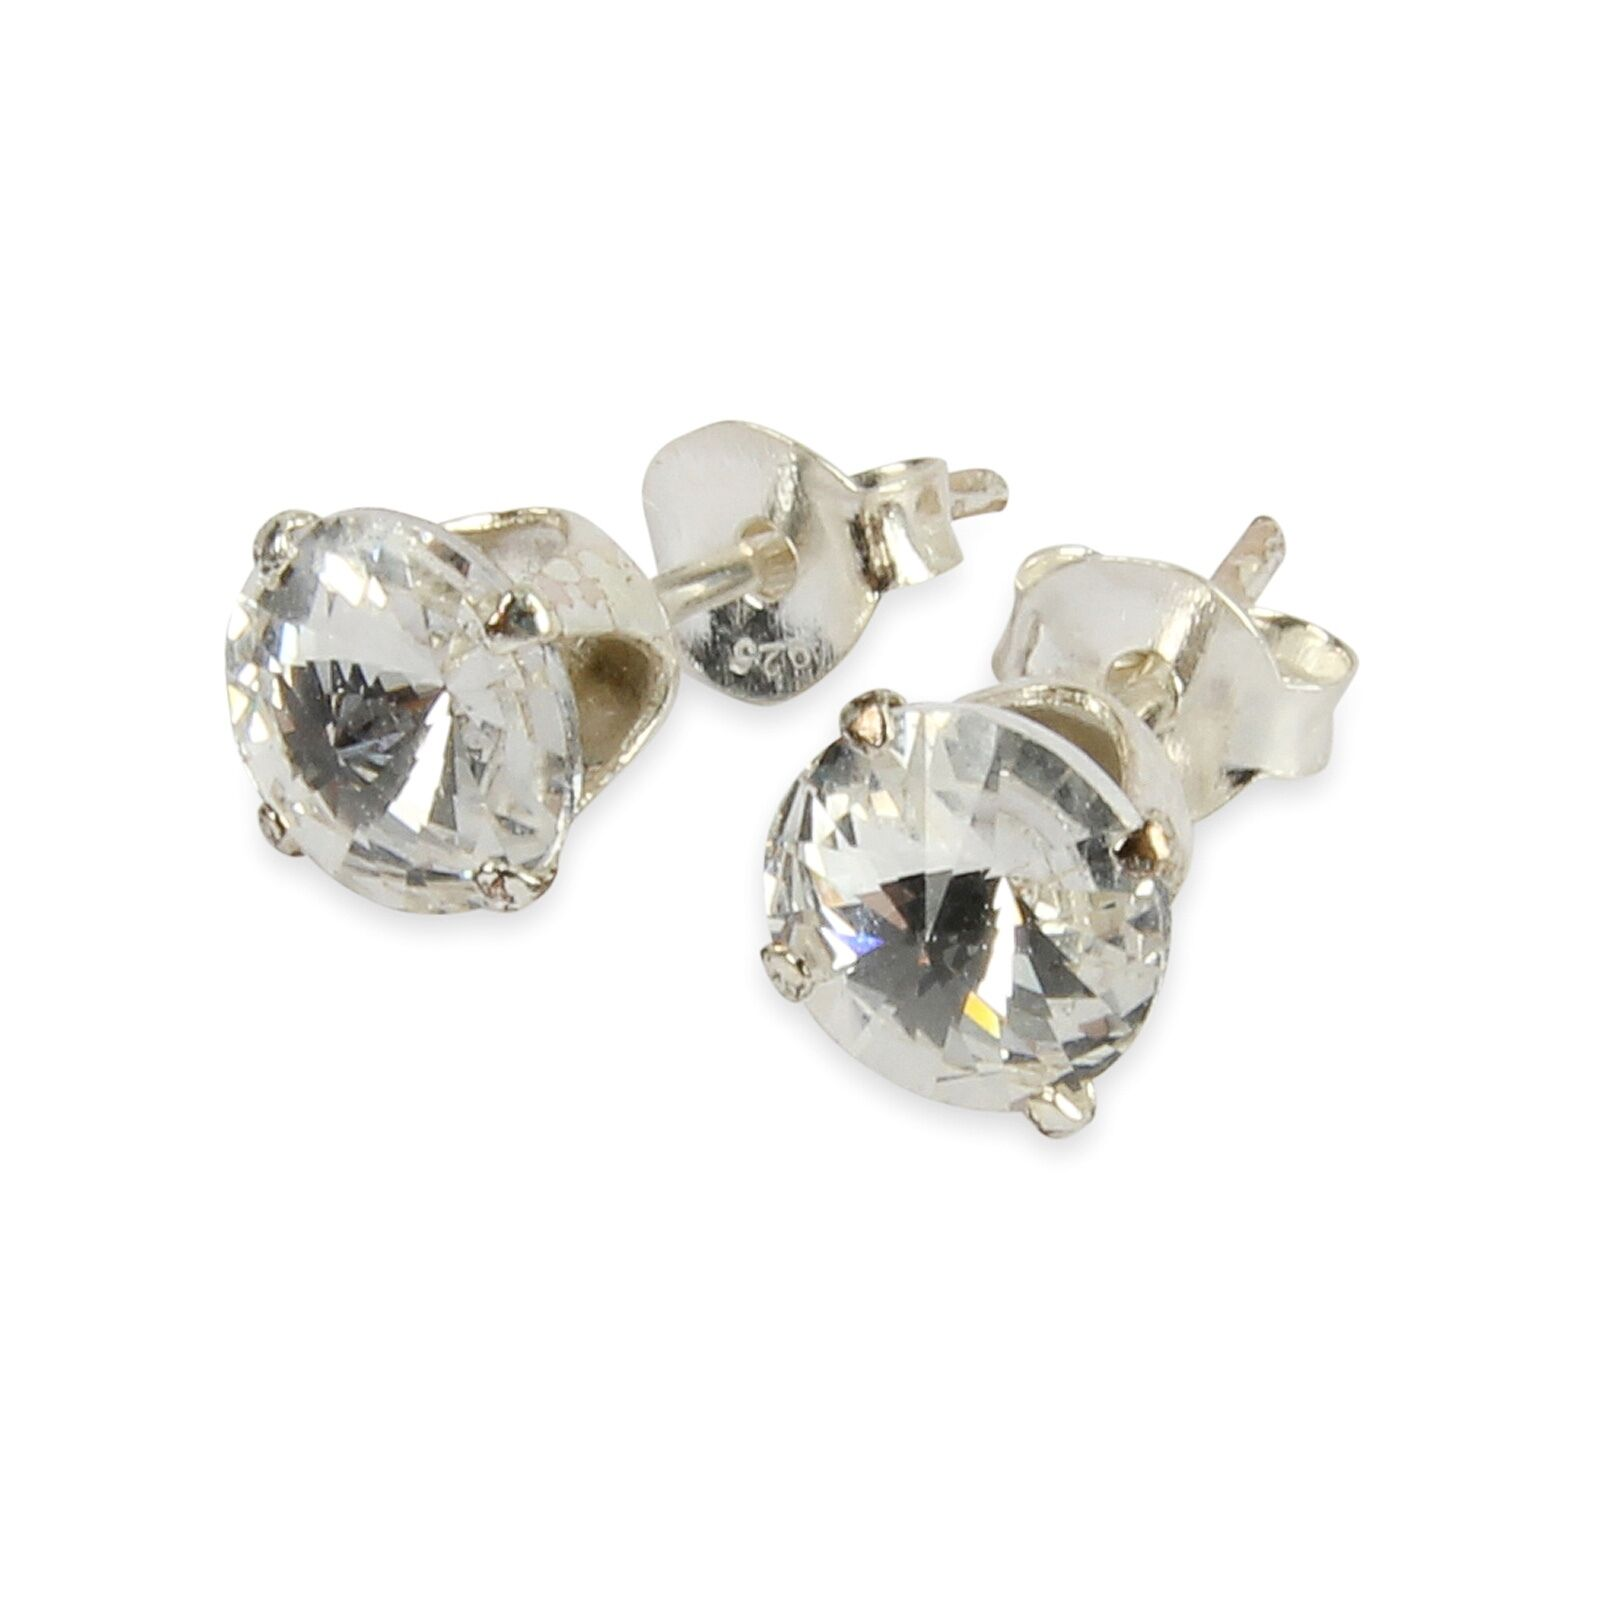 Details About 925 Sterling Silver 6mm Clear Crystal Stud Earrings Made From Swarovski